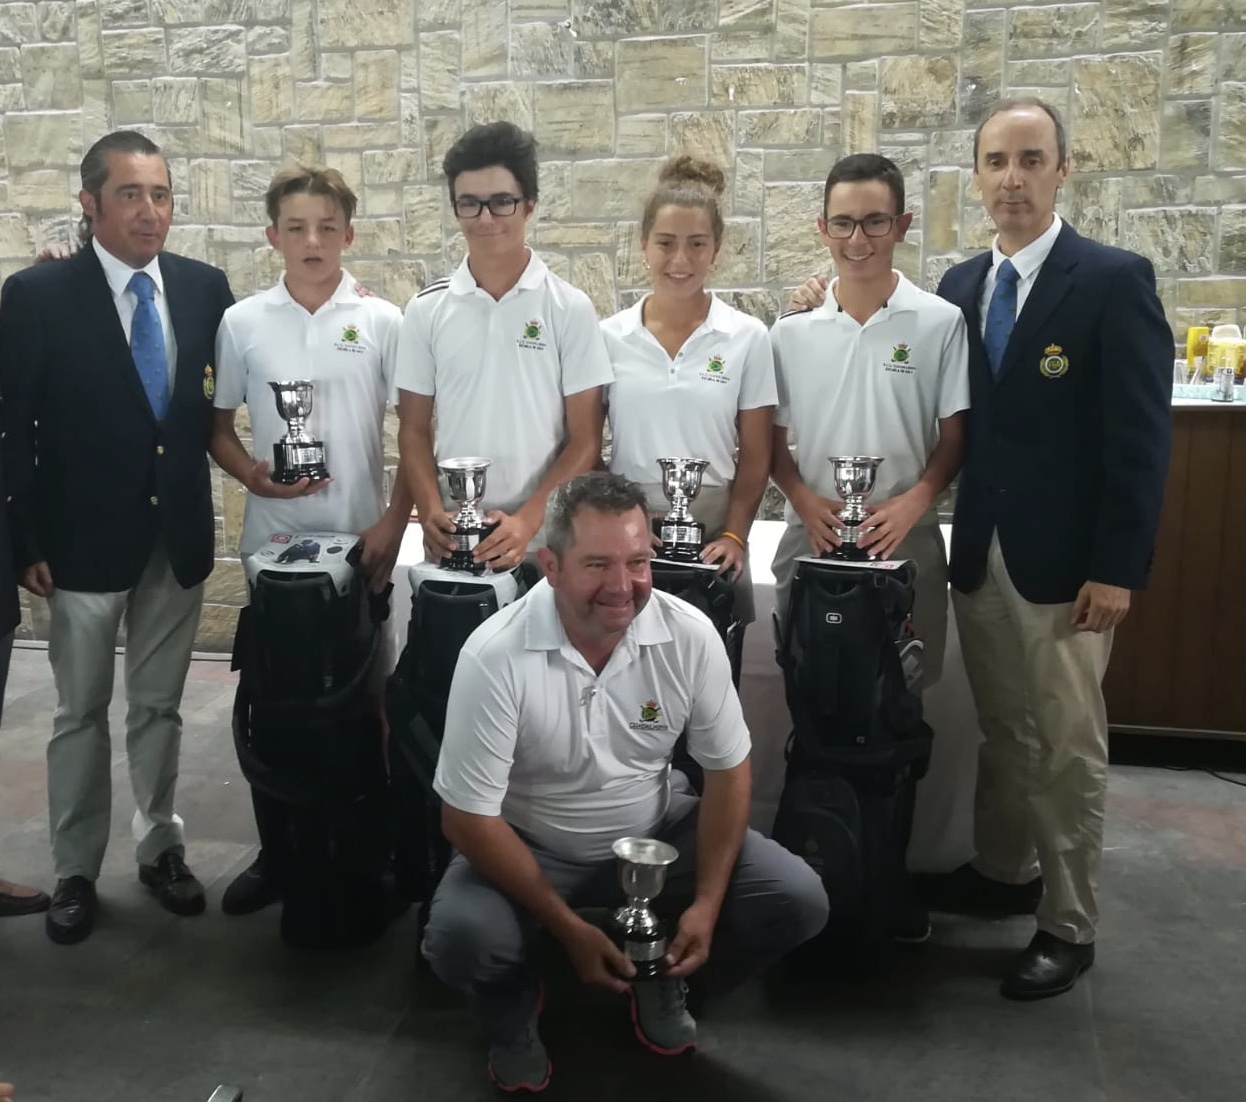 5th consecutive title for Guadalmina in the Interclubes de Andalucía Infantil & Cadete